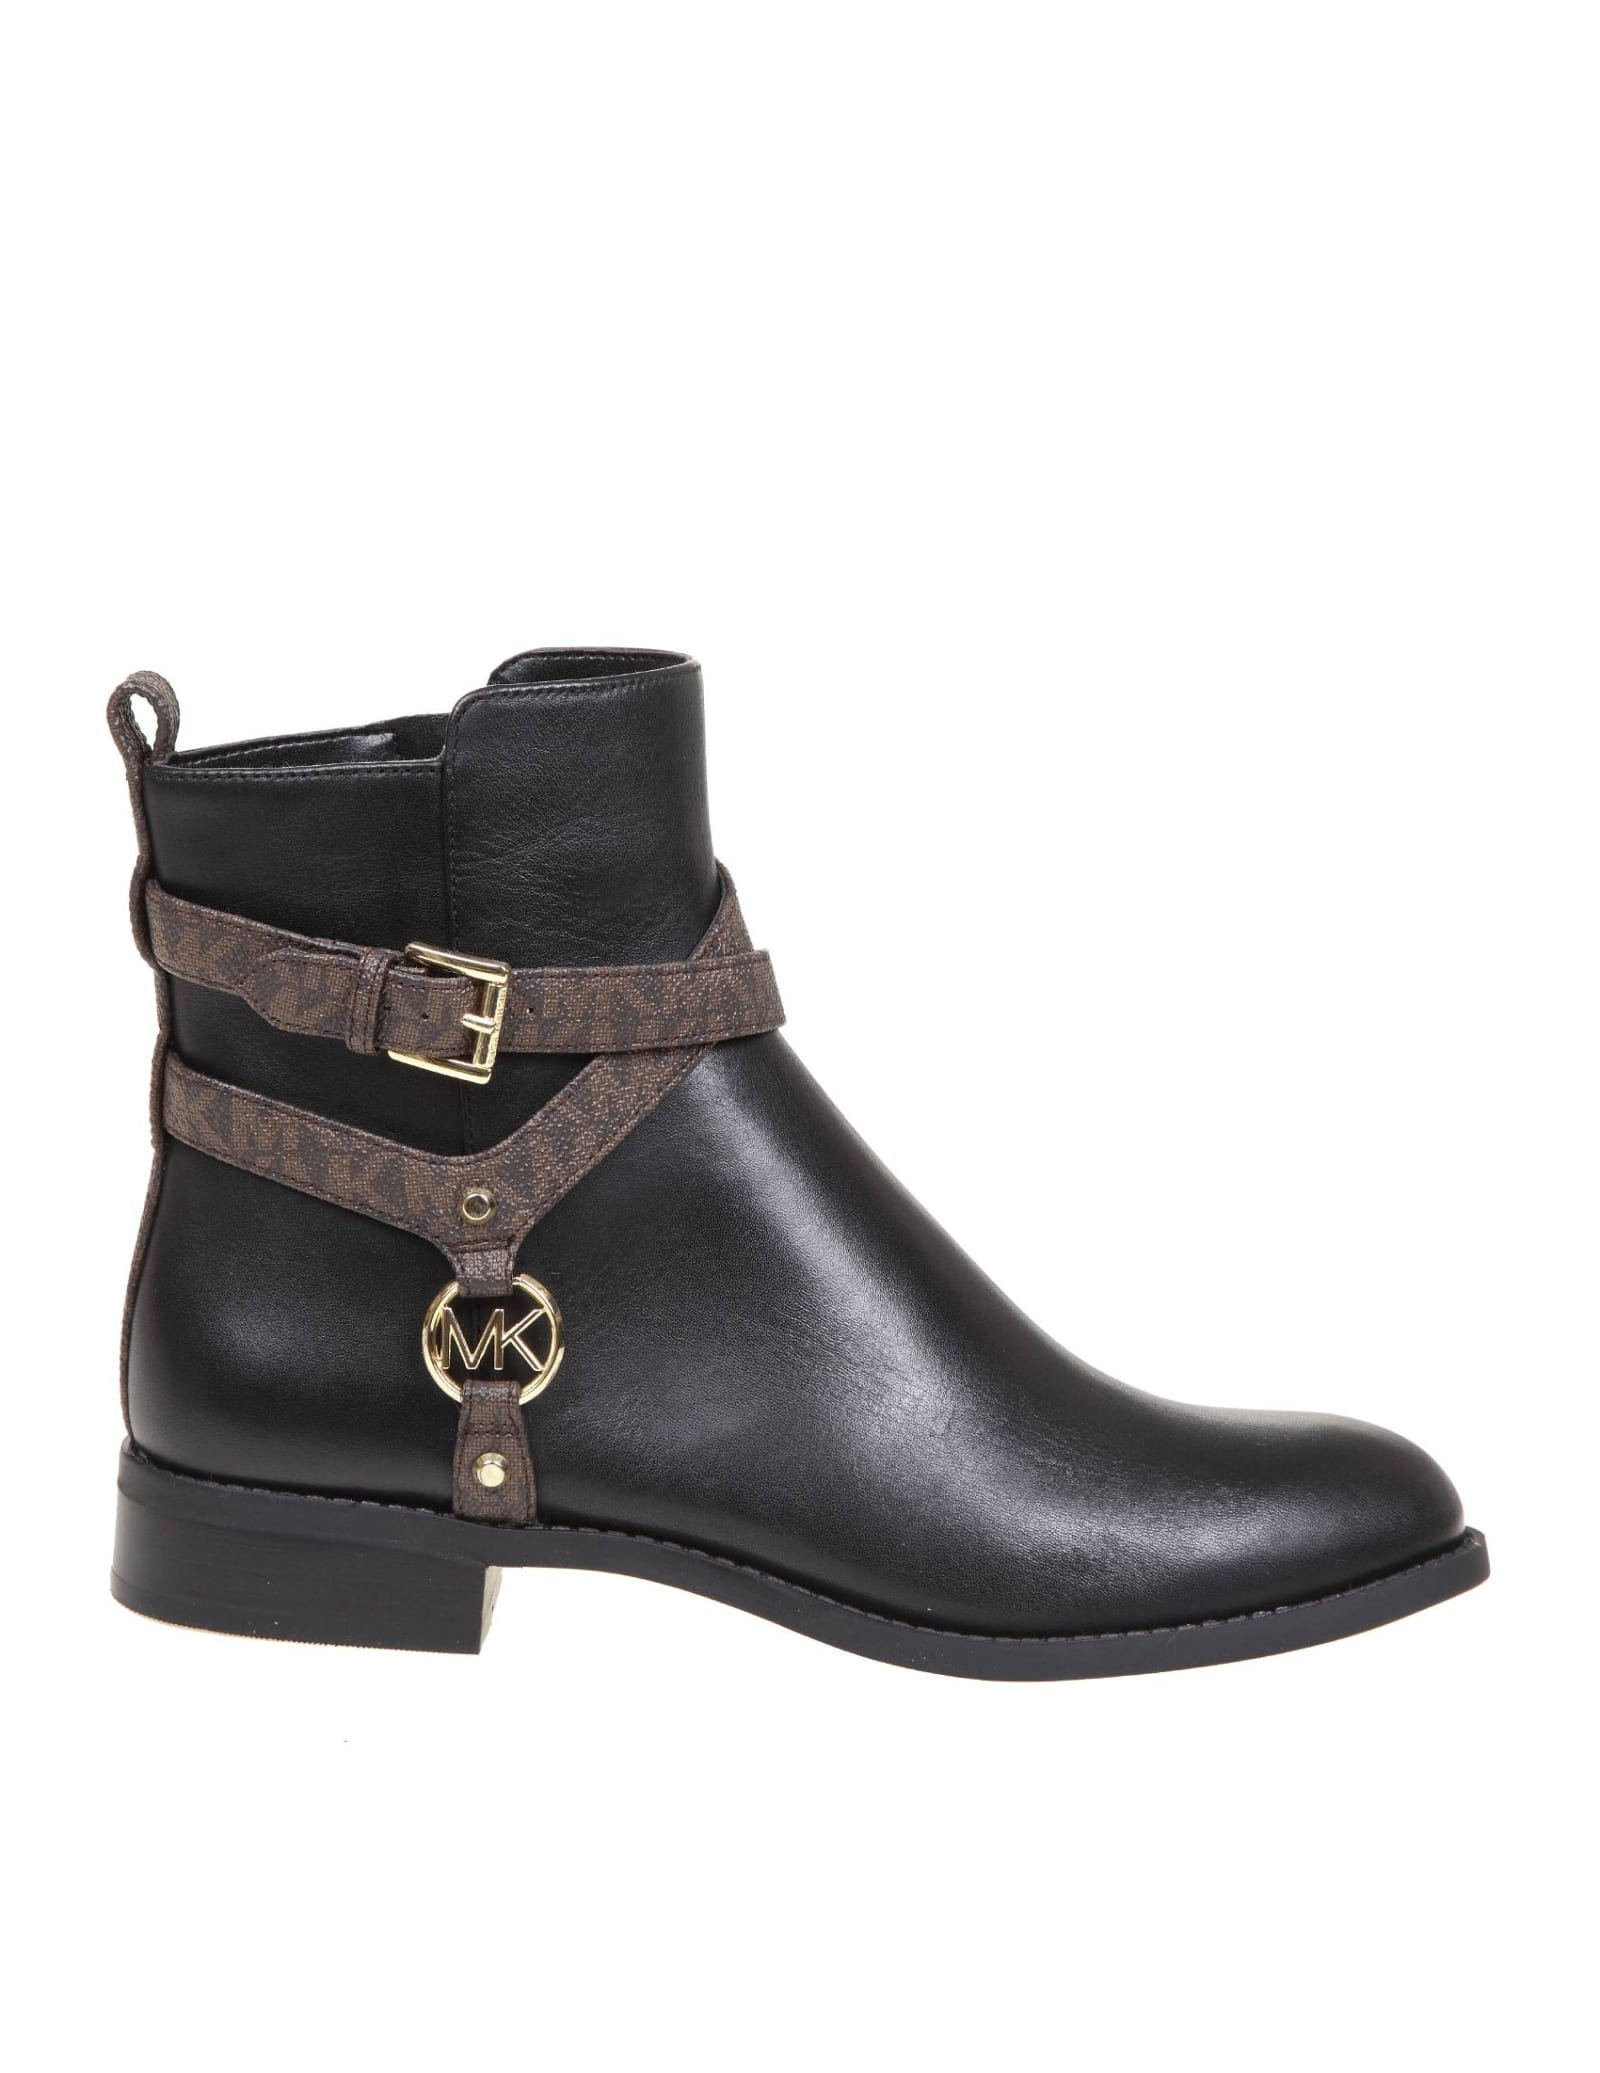 Michael Kors PRESTON BOOTS IN BLACK LEATHER